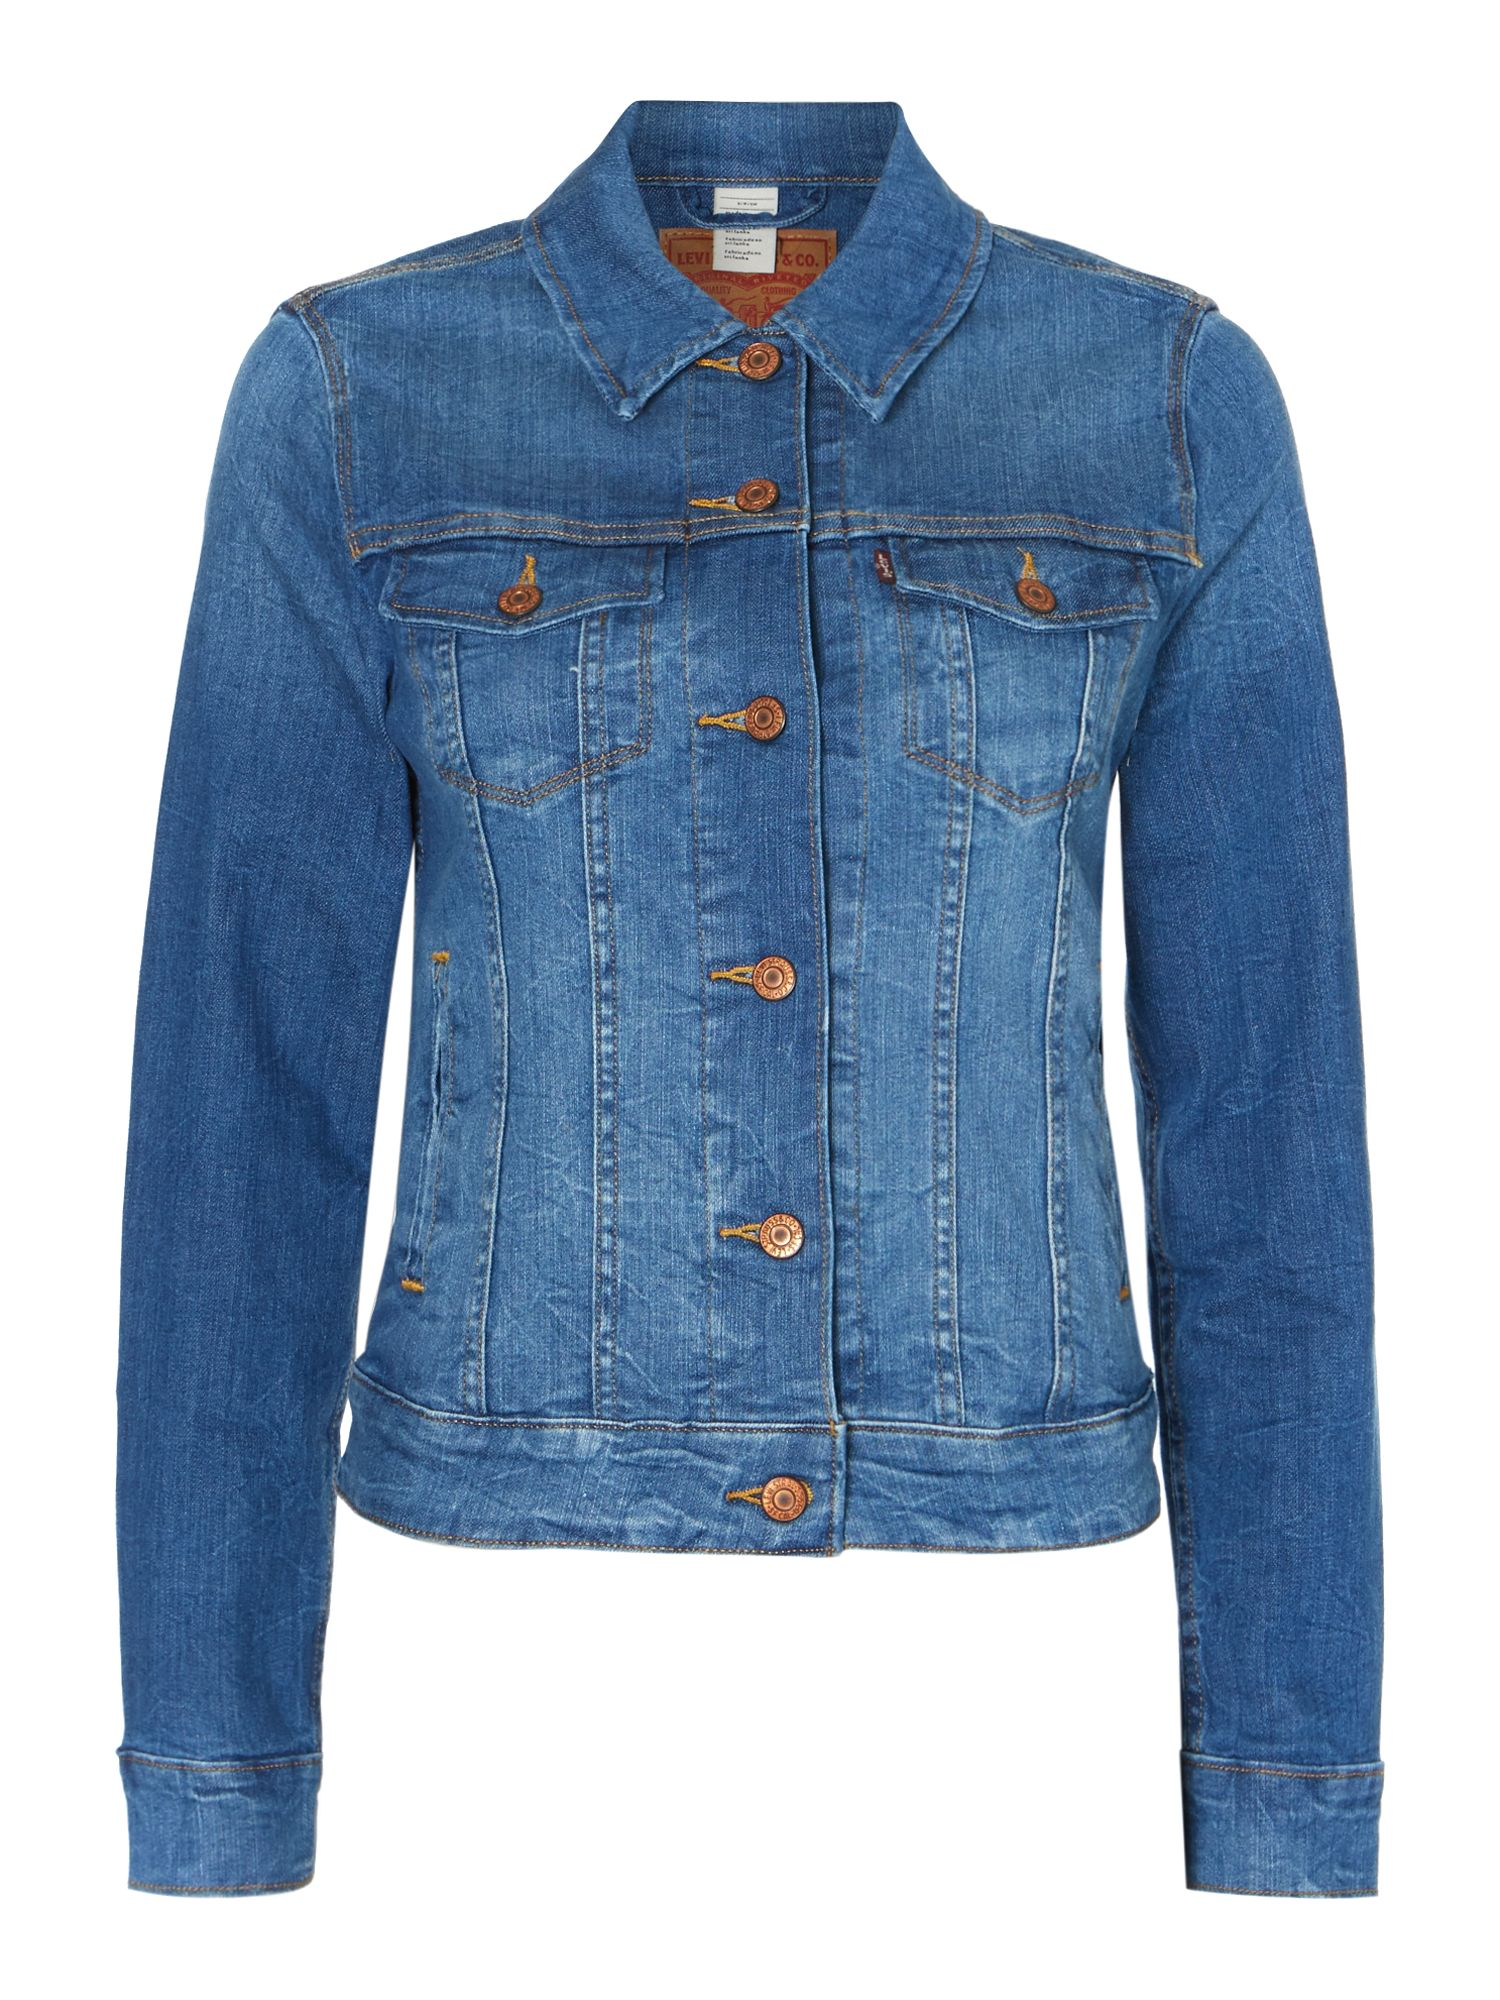 Classic trucker jacket in antique blue